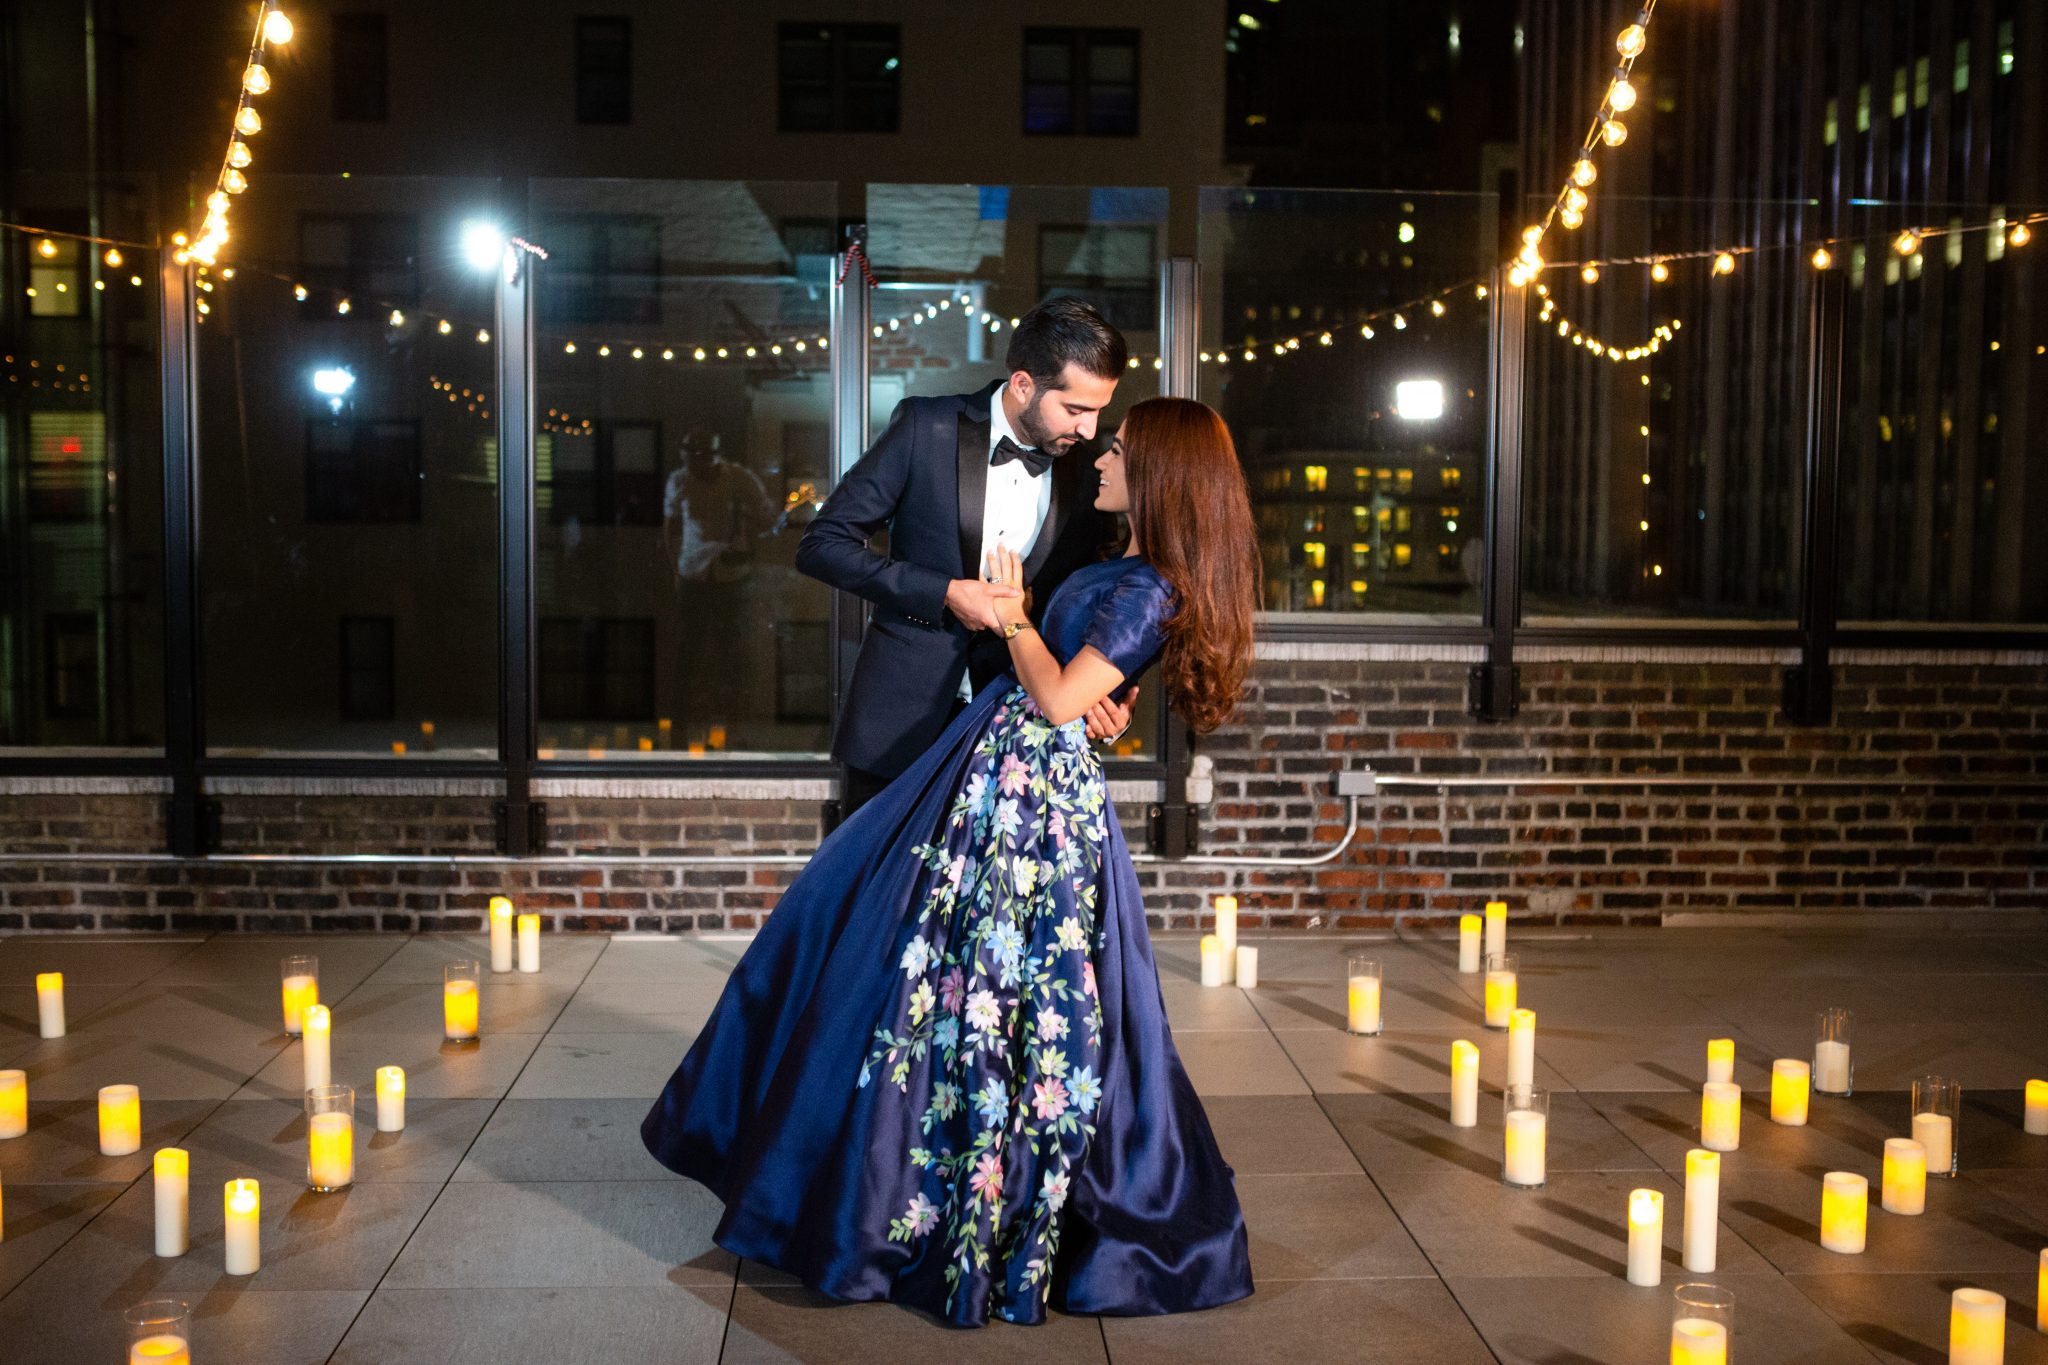 how to convince her to wear a stunning dress for a surprise proposal